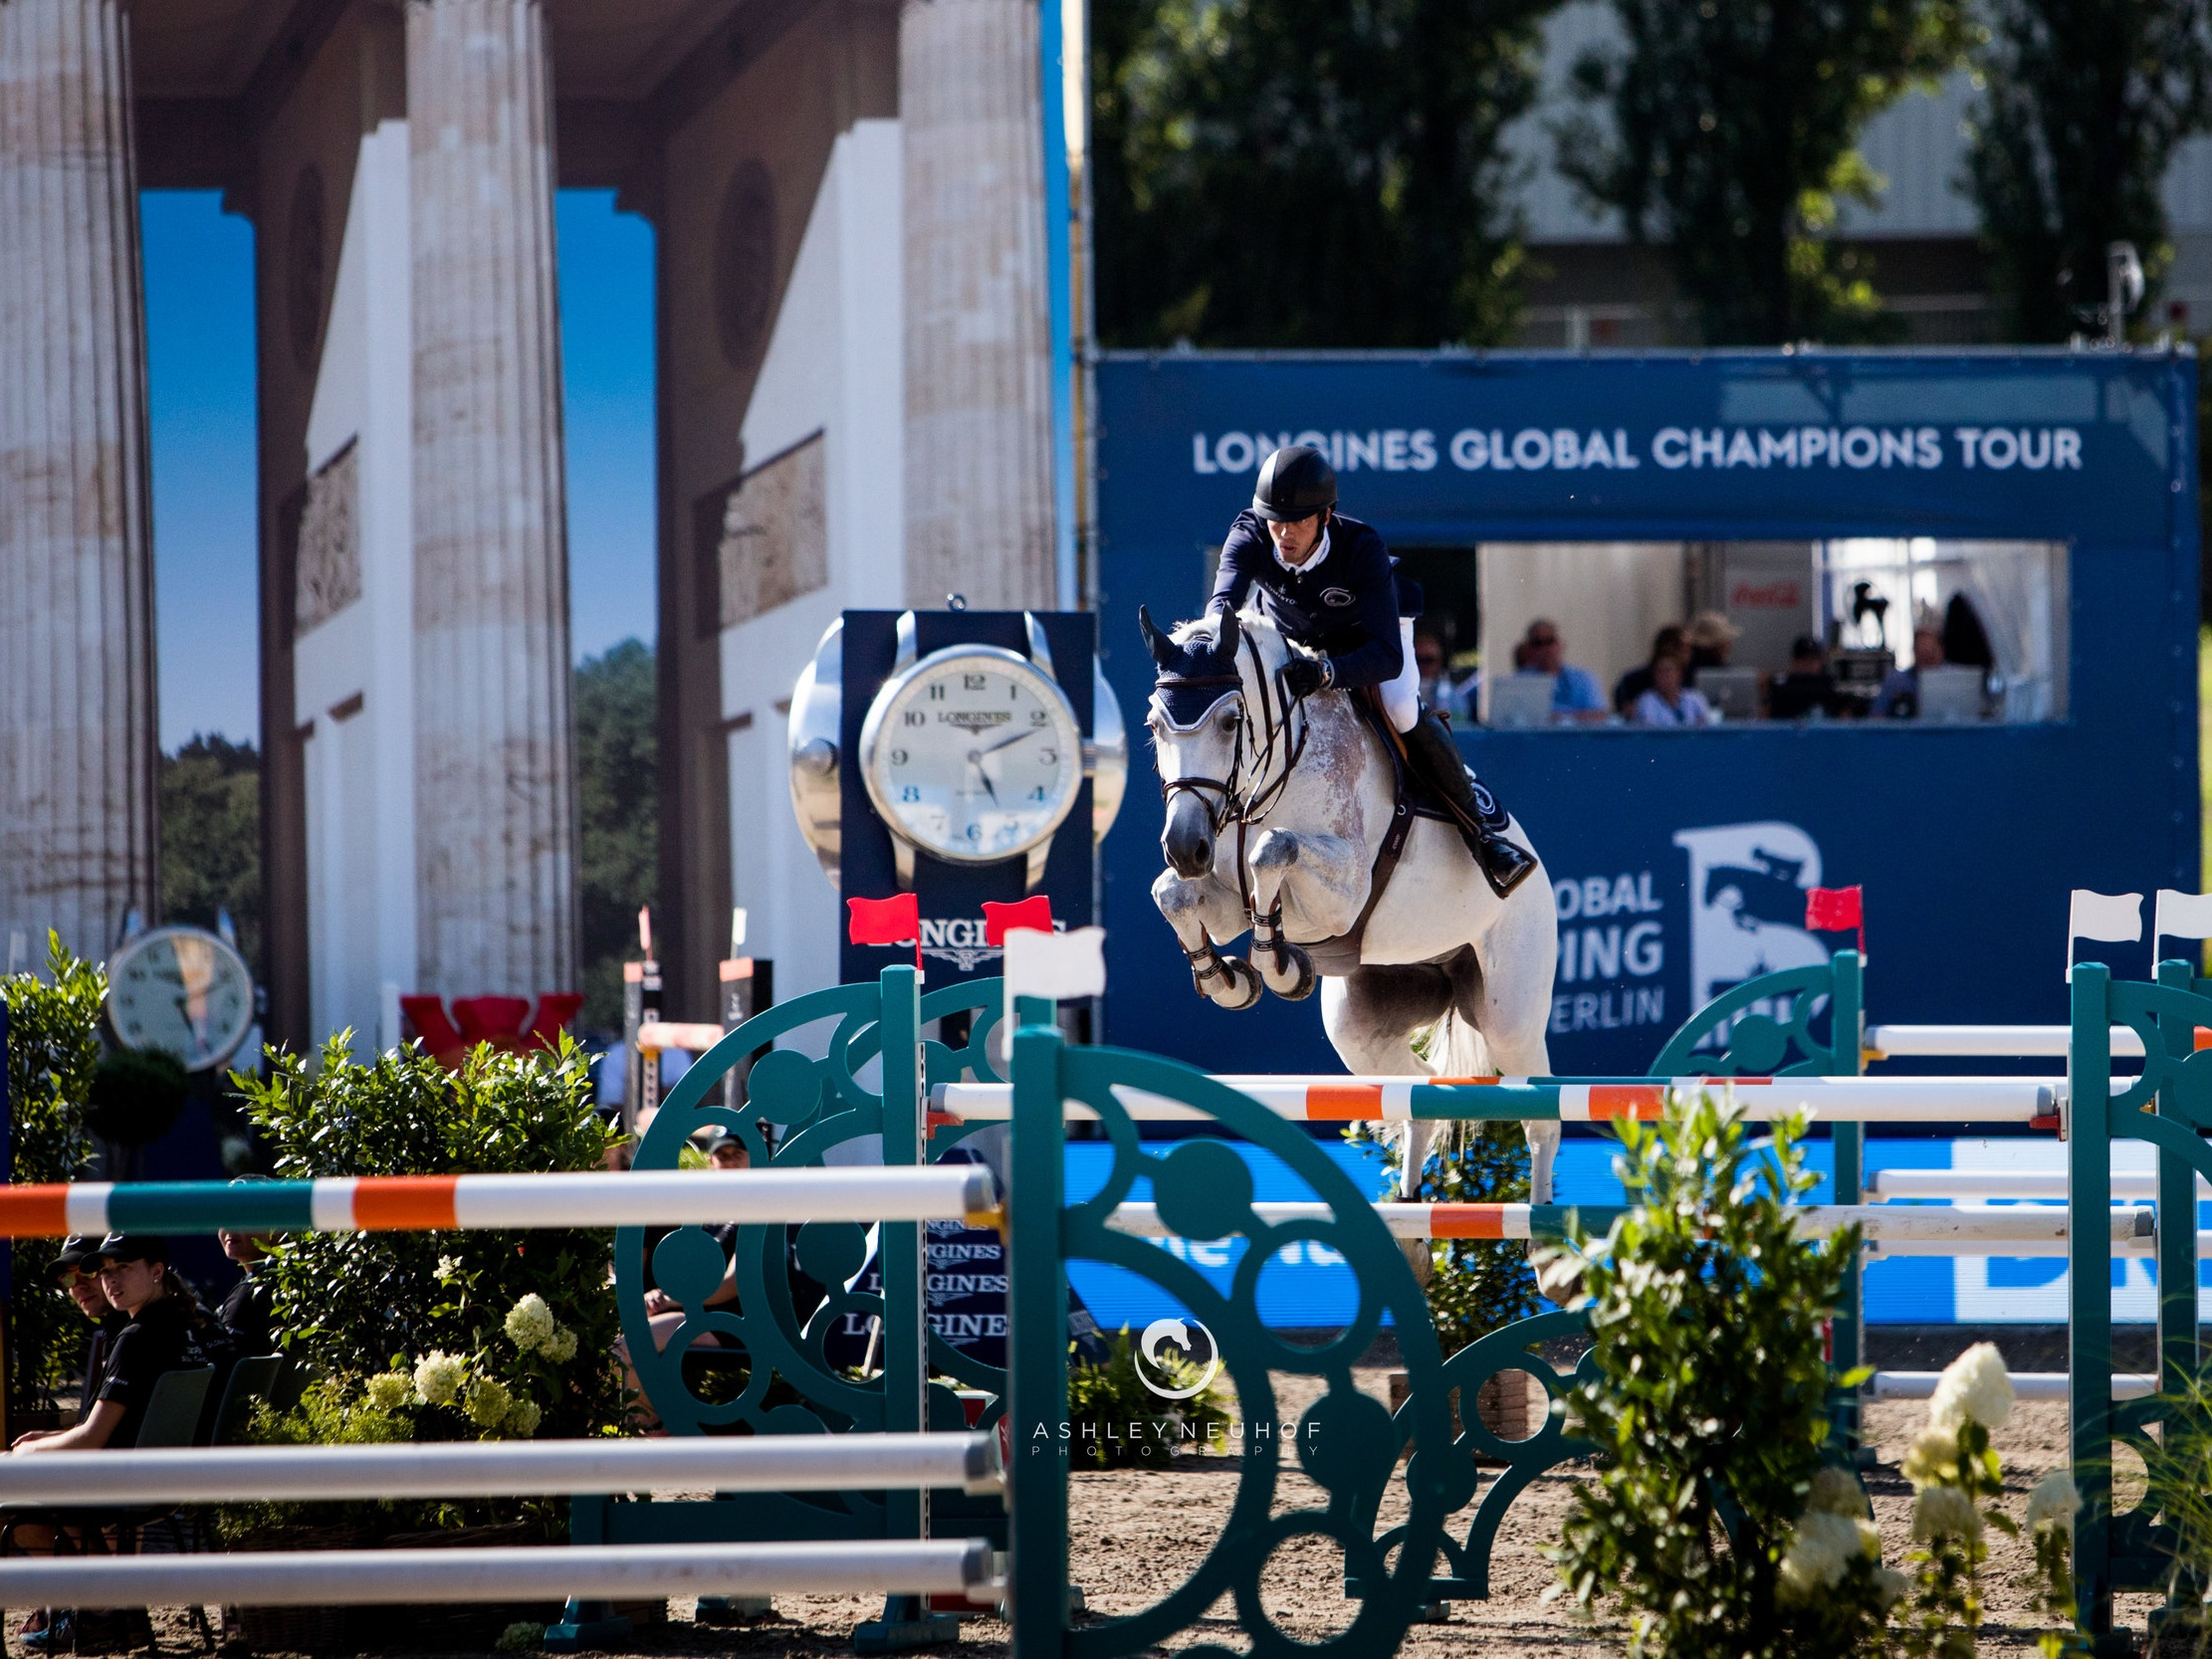 Harrie Smolders and Une de l'Othain at Global Champions League of Berlin 2019. Photo by Ashley Neuhof Photography.